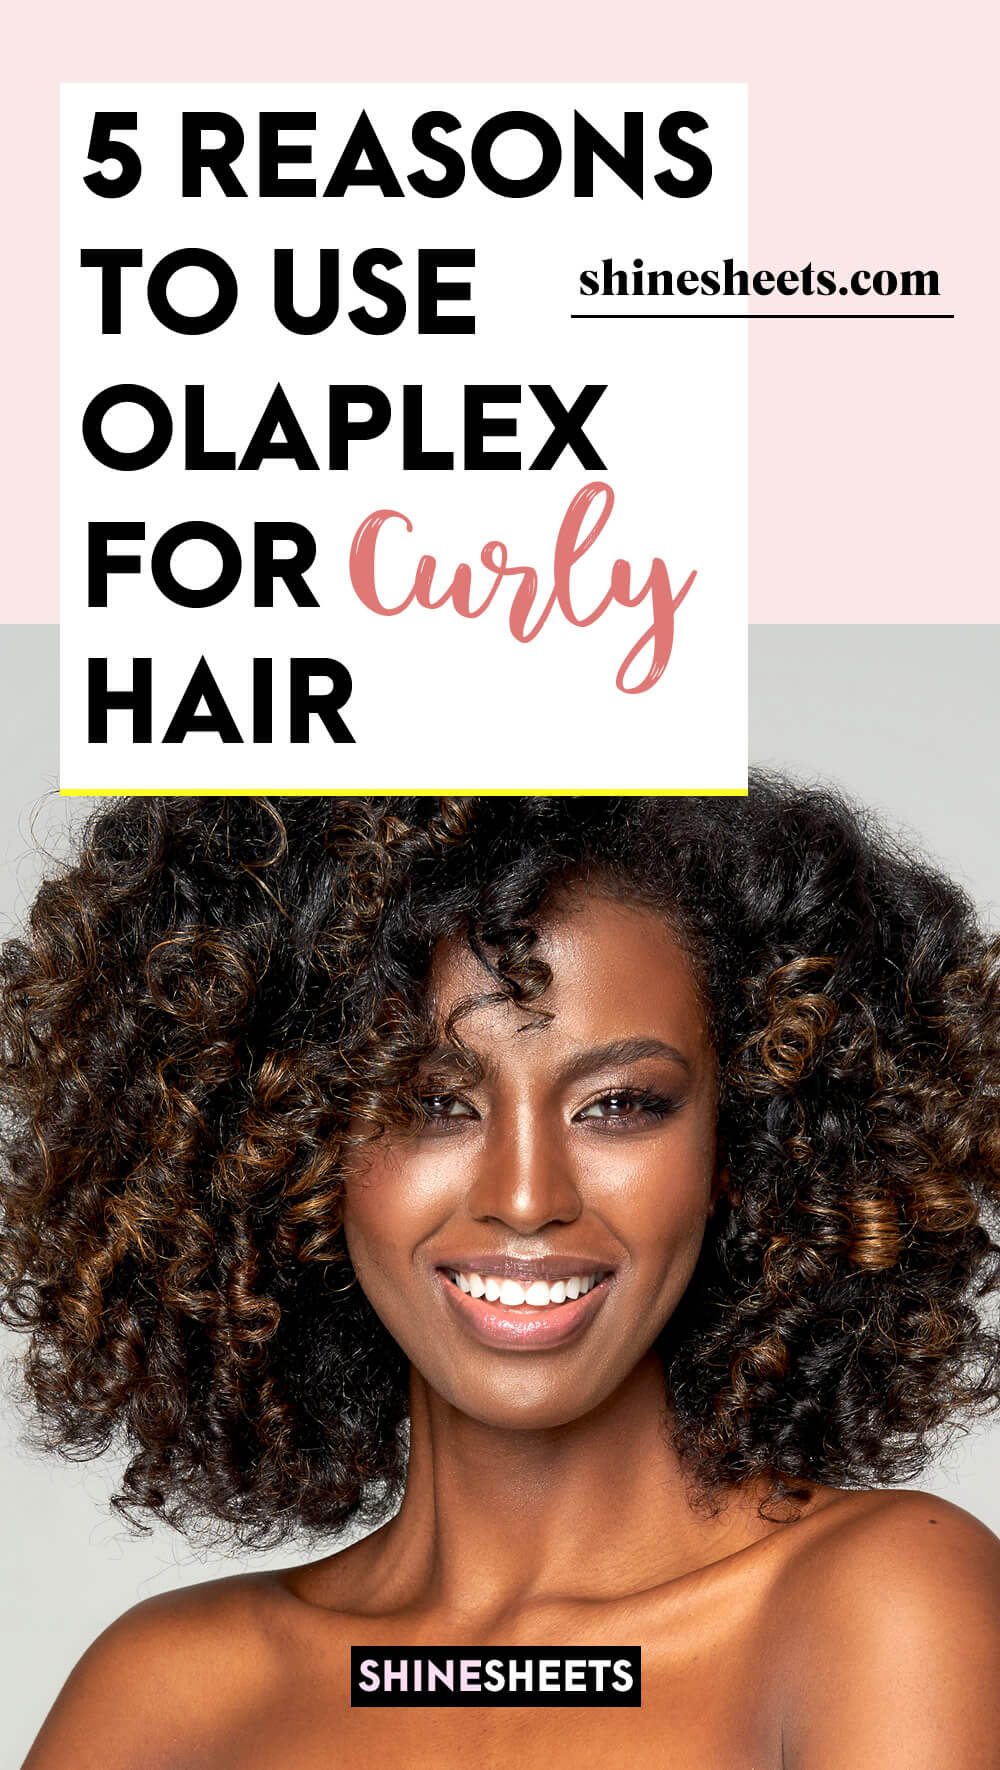 woman happy after using olaplex for curly hair